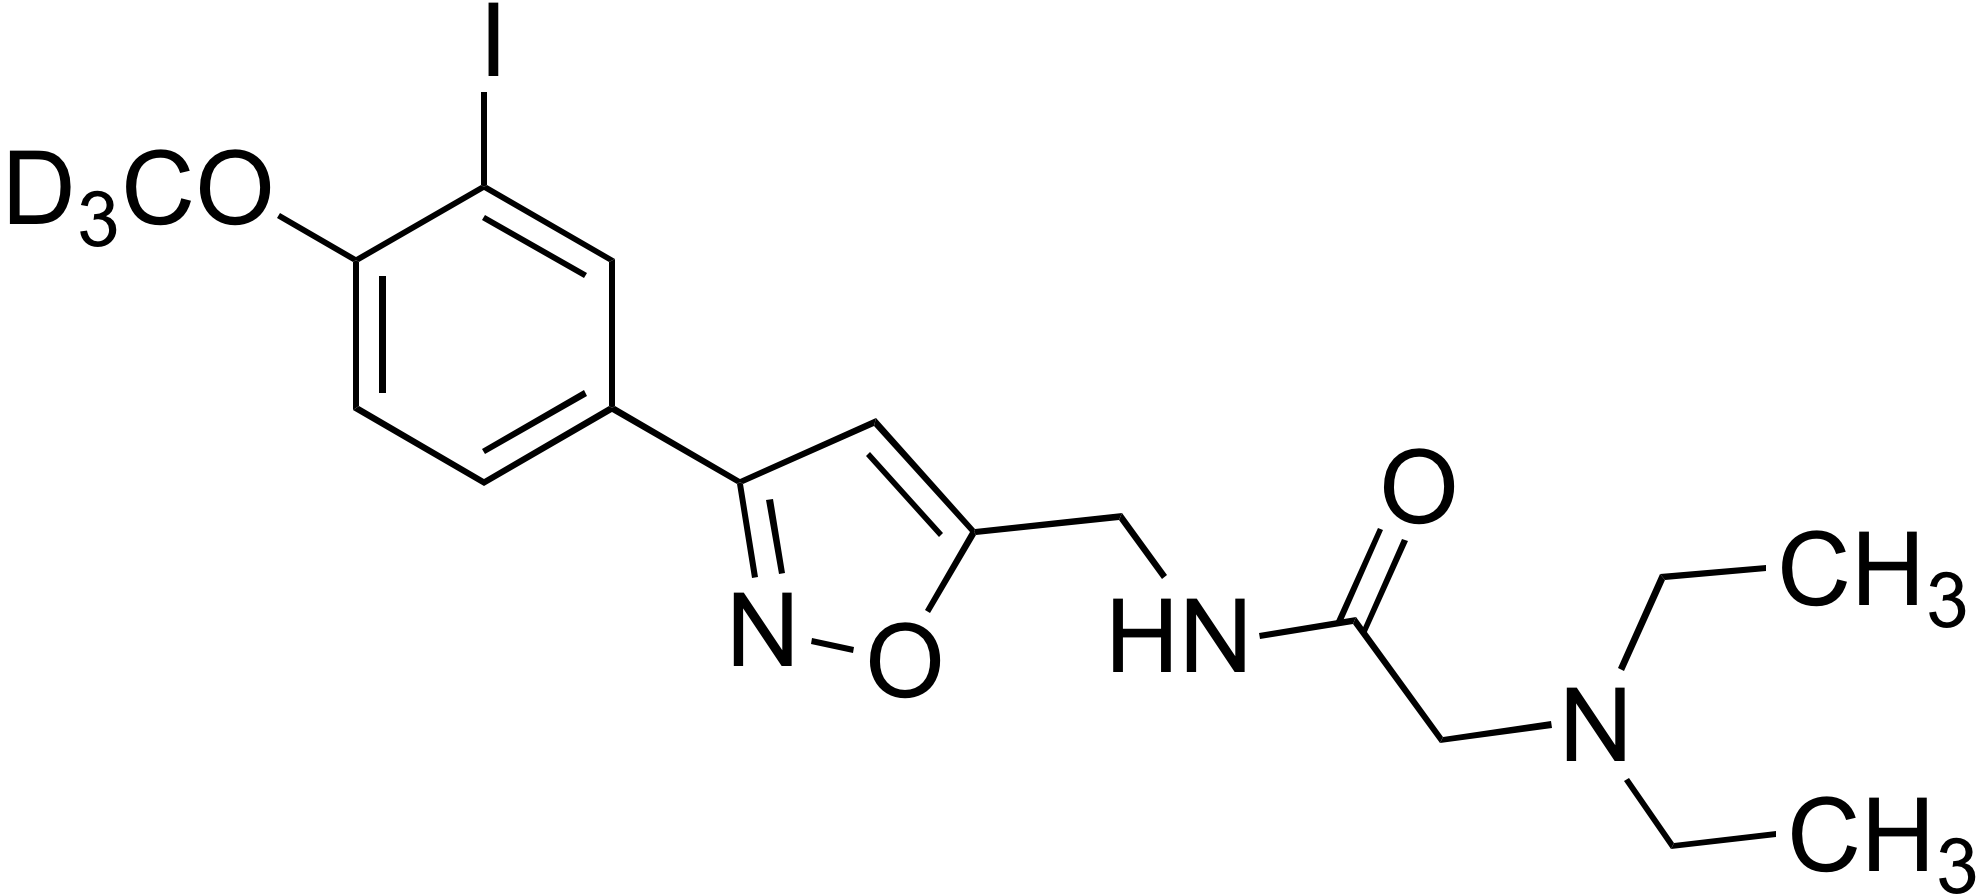 N-((3-(3-Iodo-4-methoxy-d<sub>3</sub>-phenyl)isoxazol-5-yl)methyl)-2-(diethylamino)ethanamide